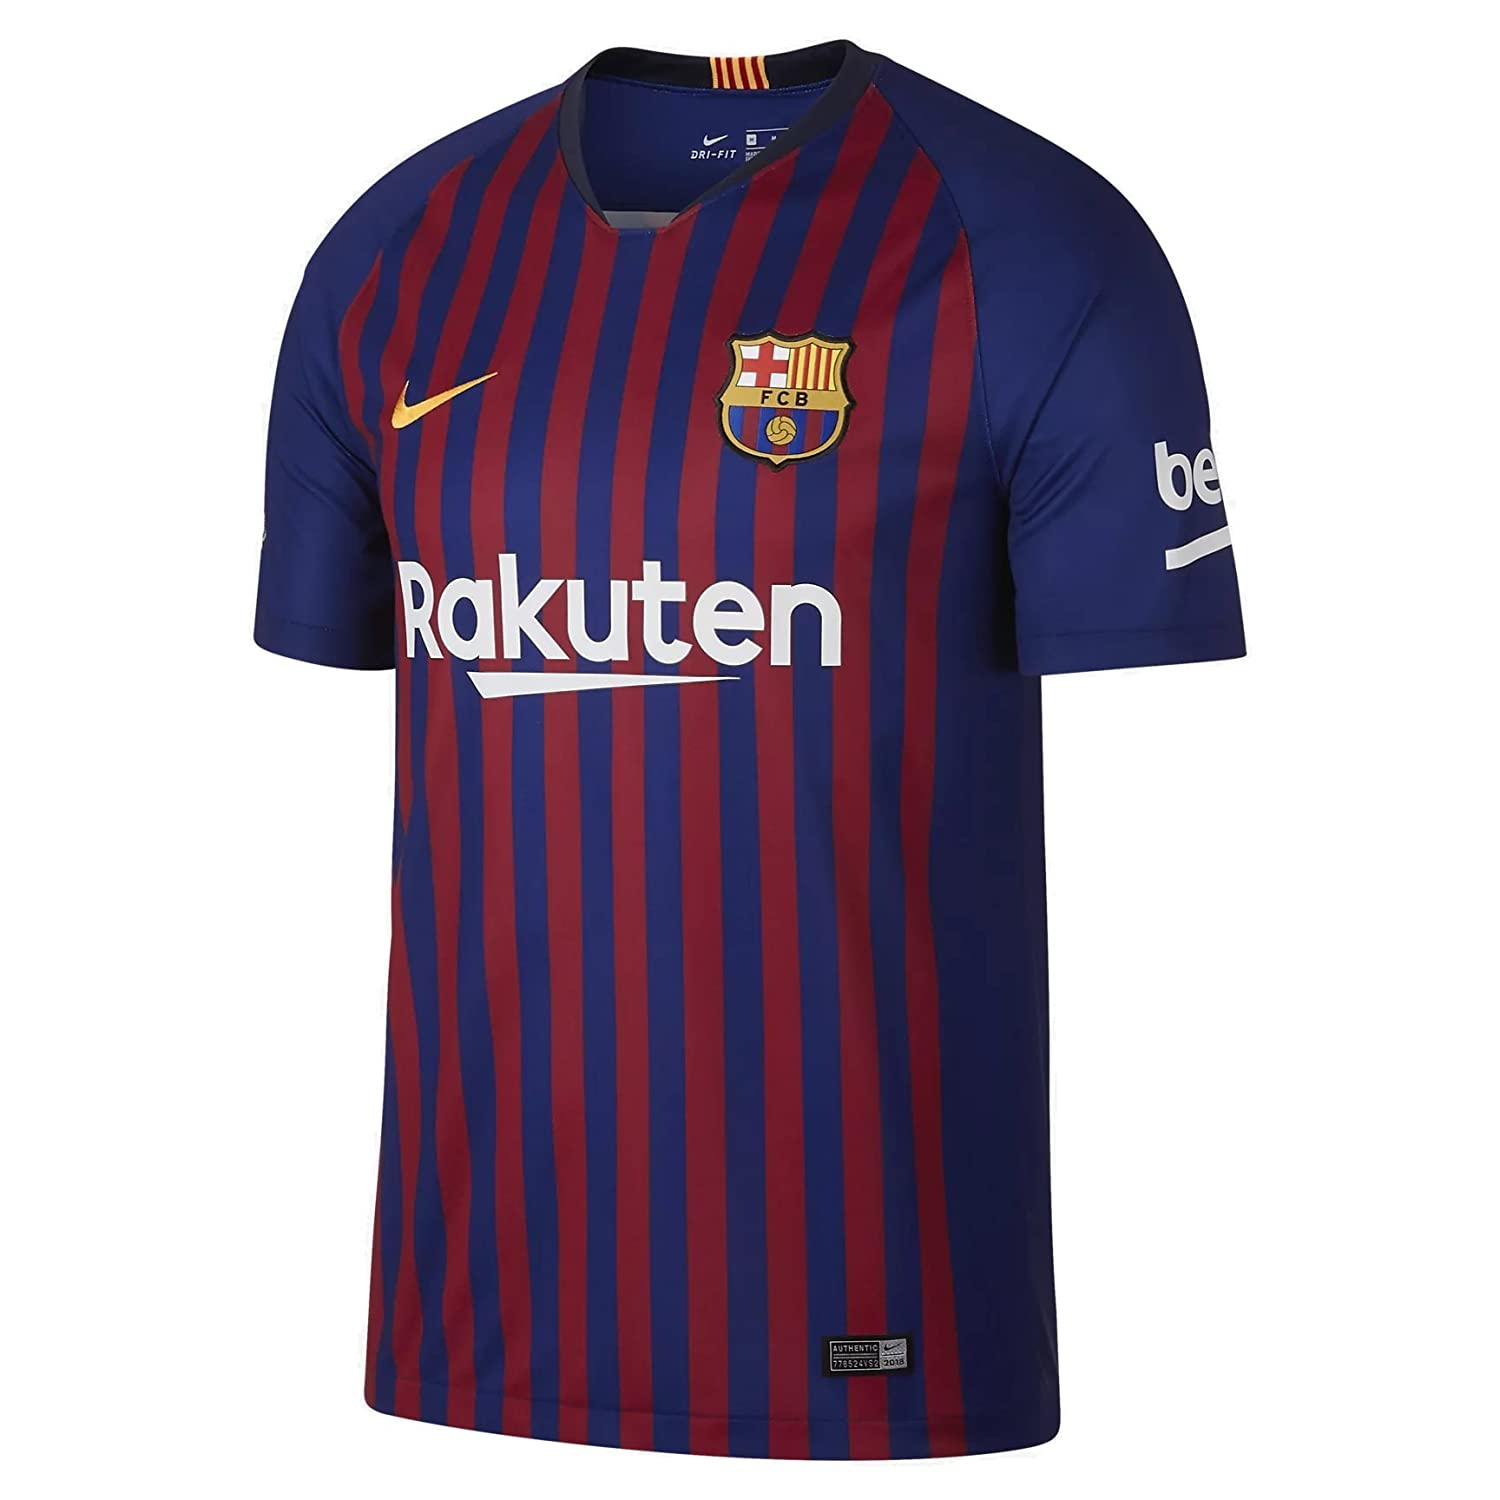 2018-2019 Barcelona Home Nike Football Shirt B077VVVH5F XL 46-48